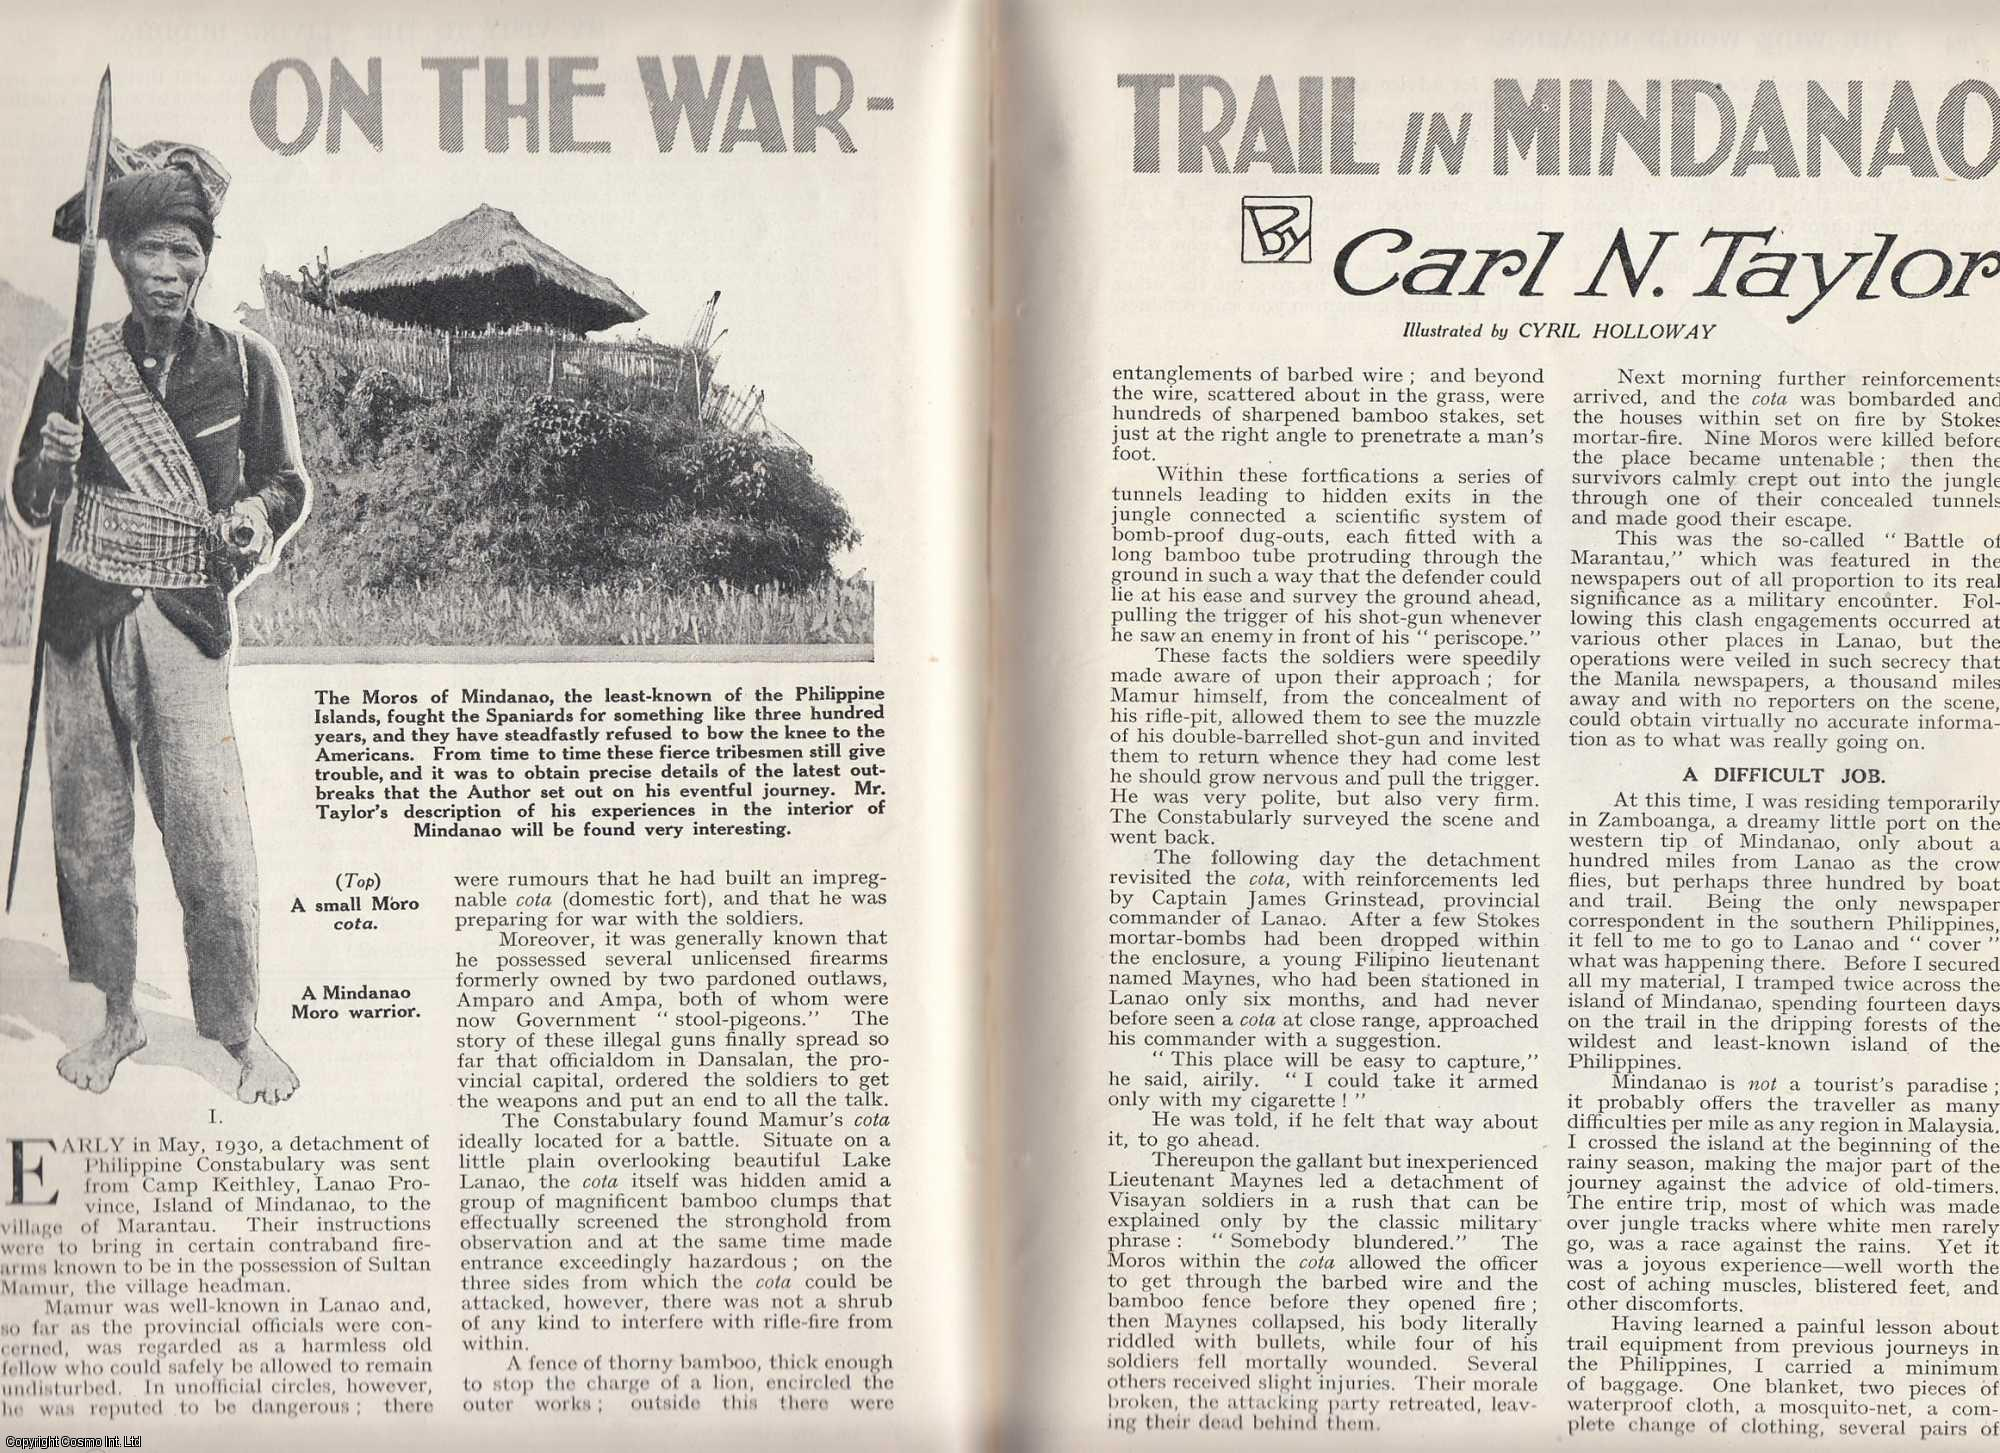 TAYLOR, CARL N. - On The War-Trail in Mindanao, Philippines. A two part story. An original article from the Wide World Magazine, 1932.